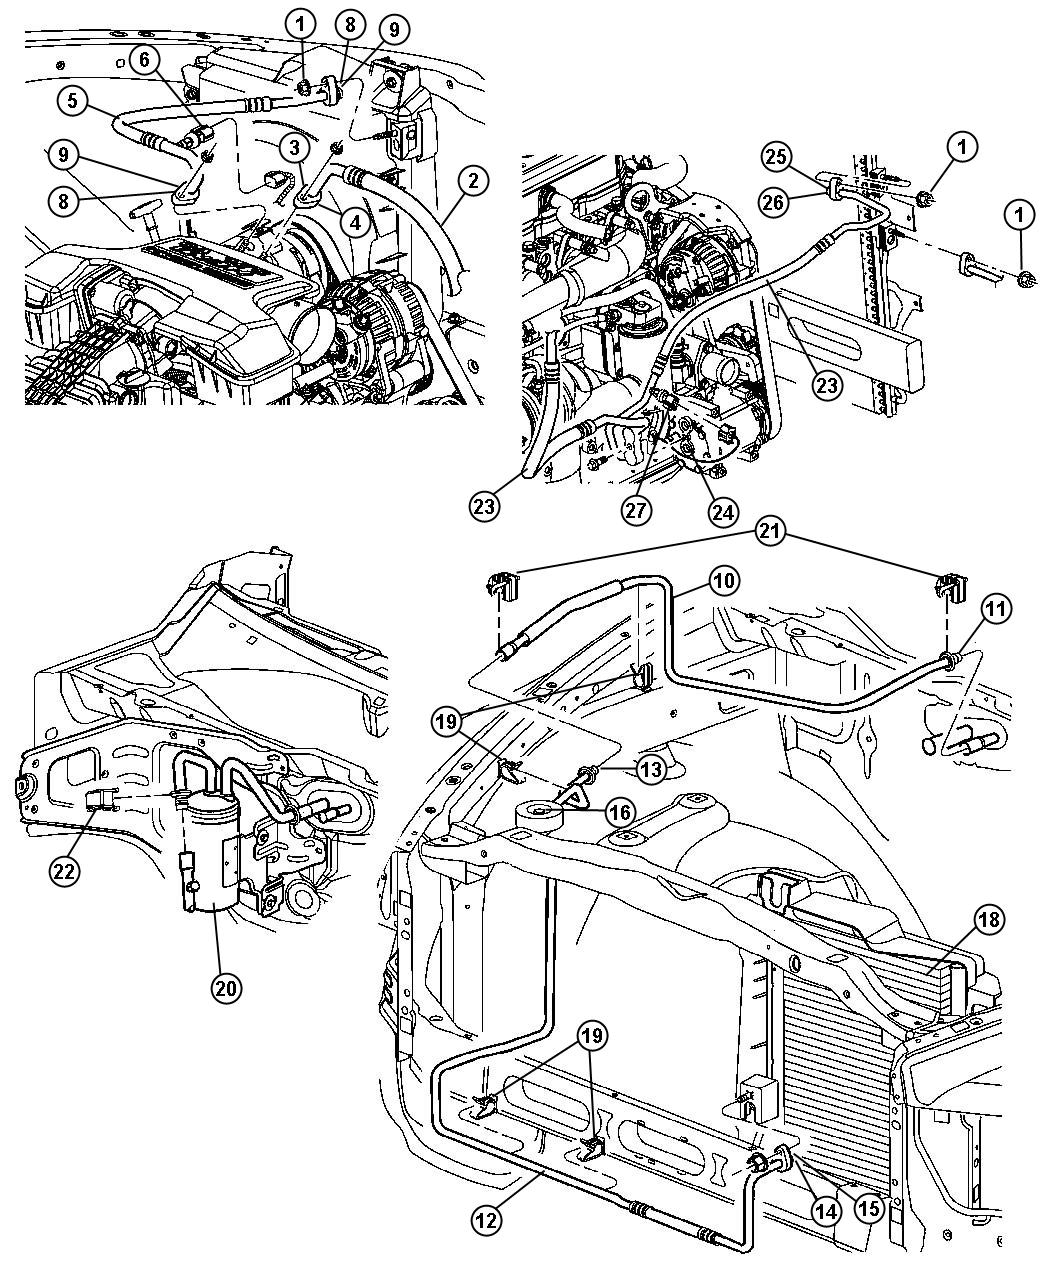 Dodge Ram 3500 Line. Used for: a/c suction and discharge